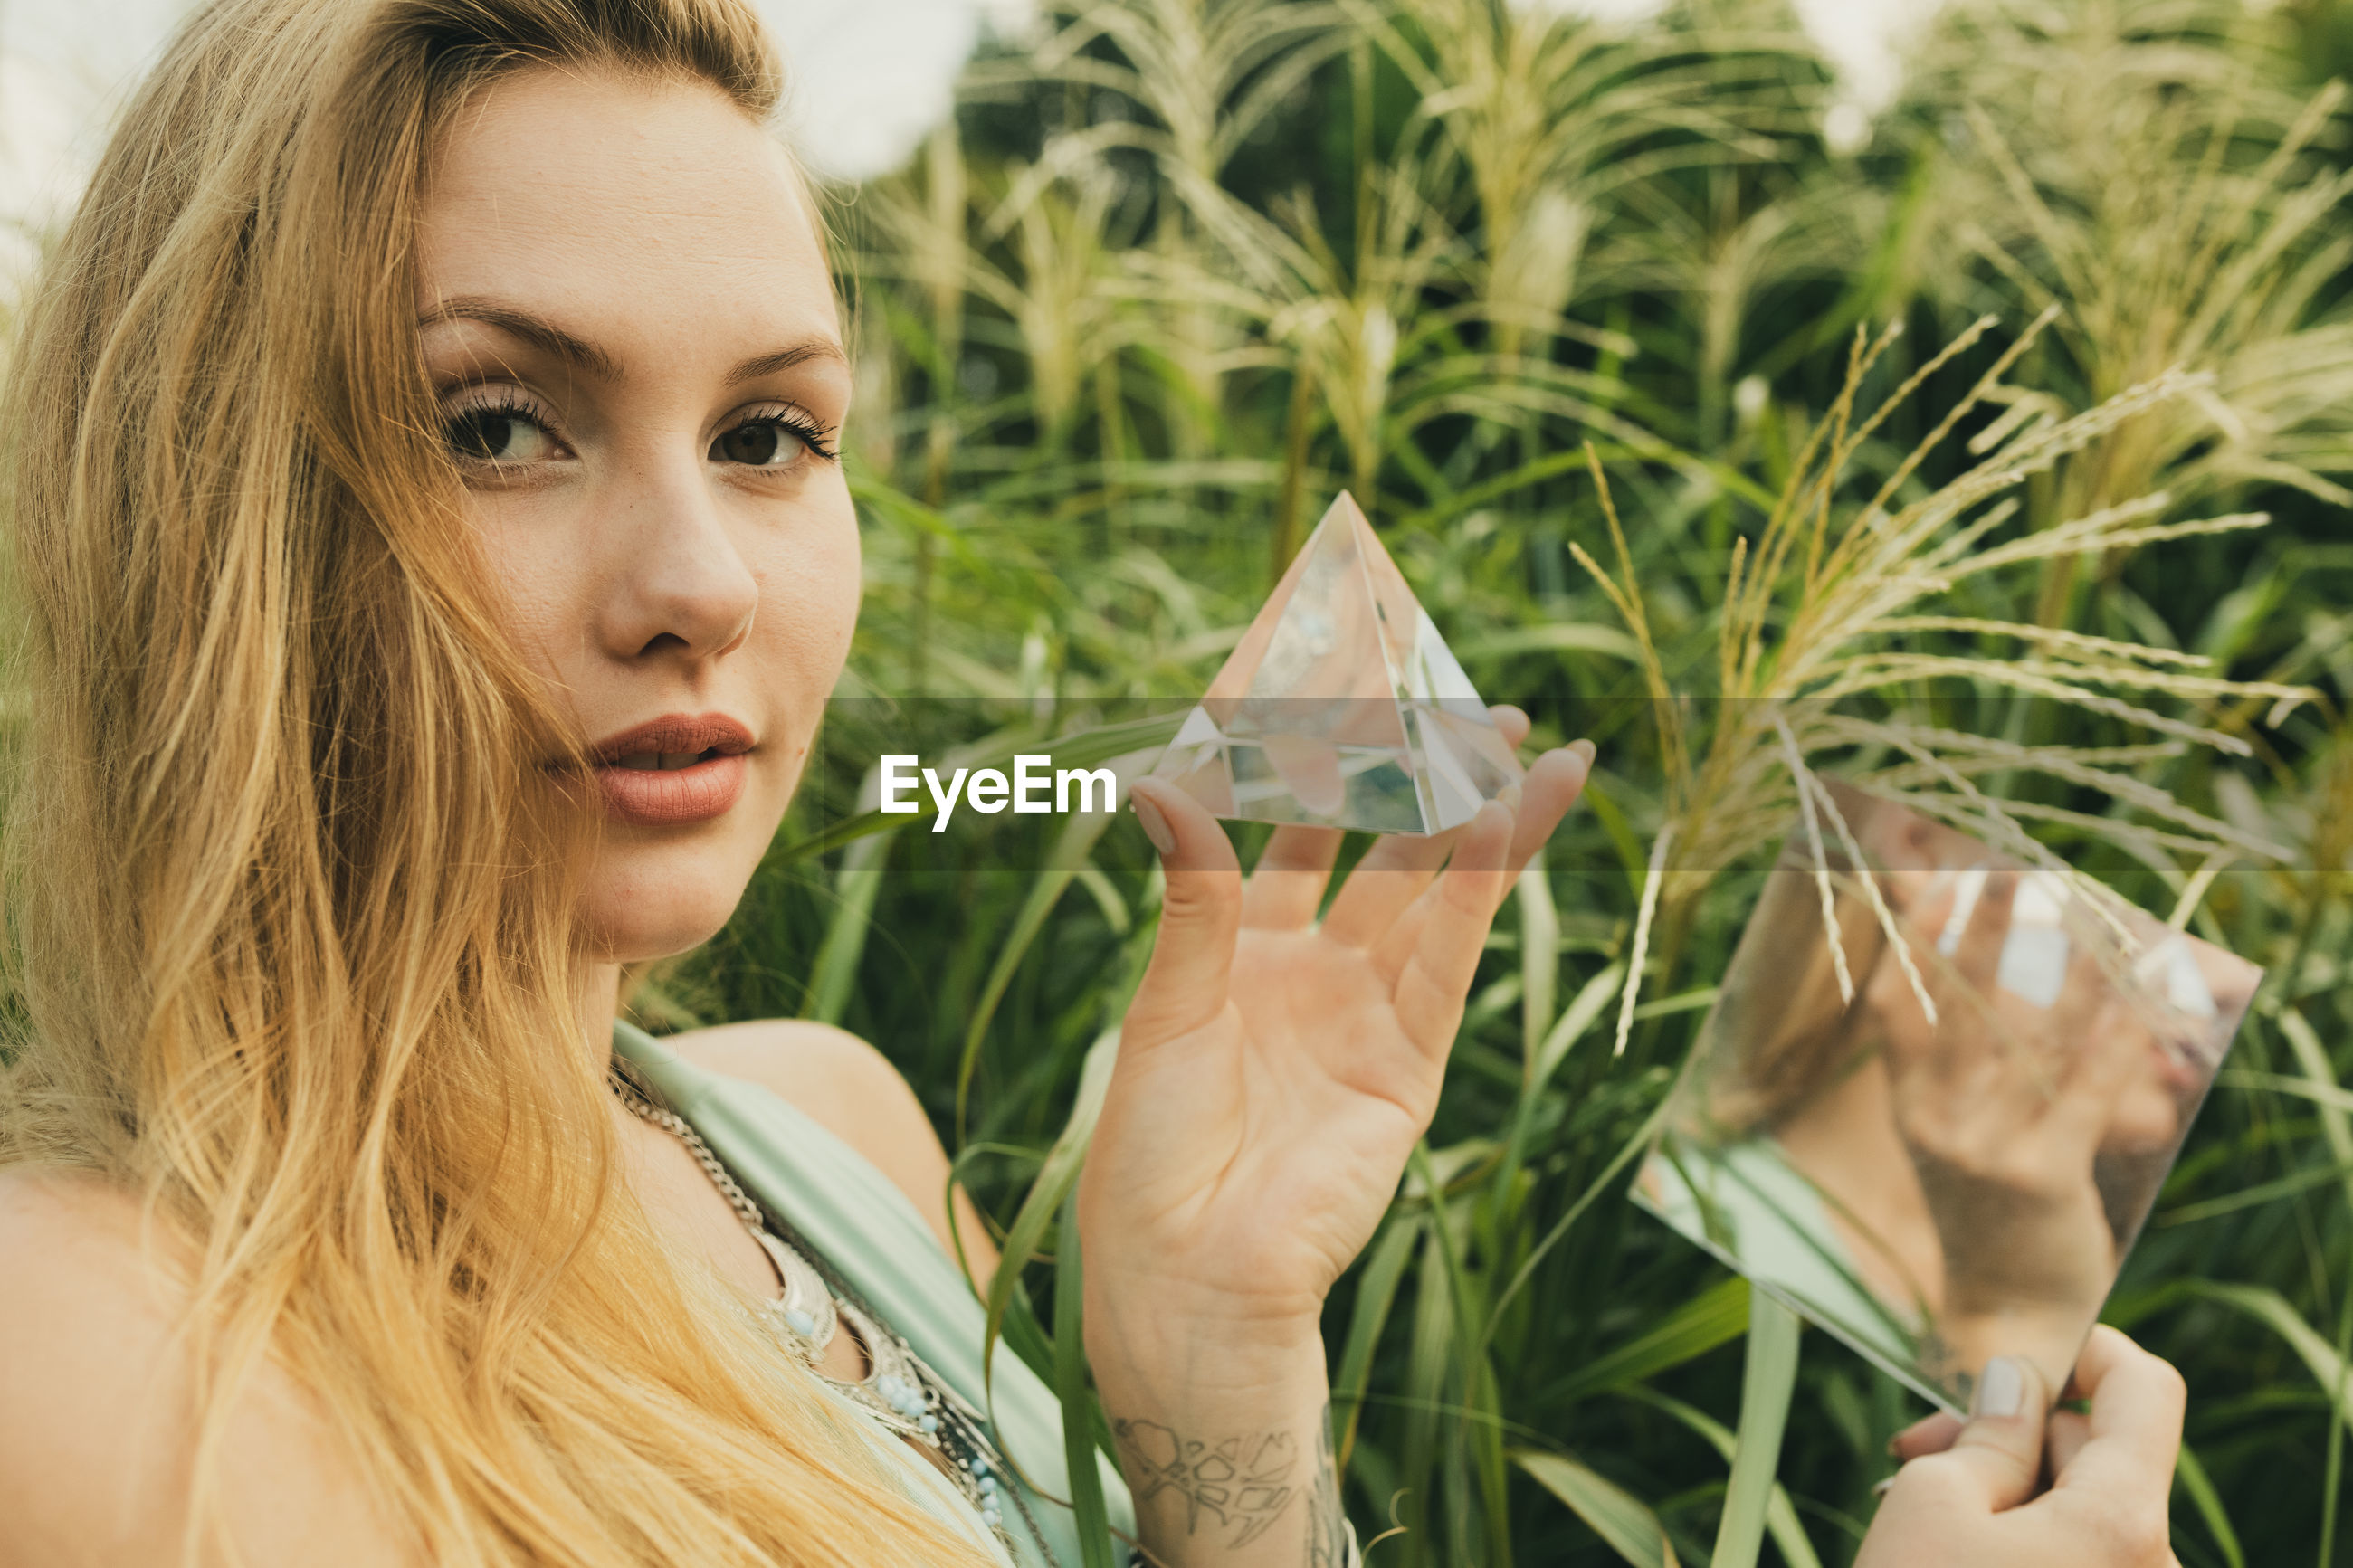 Portrait of young woman holding prism and mirror while standing against plant